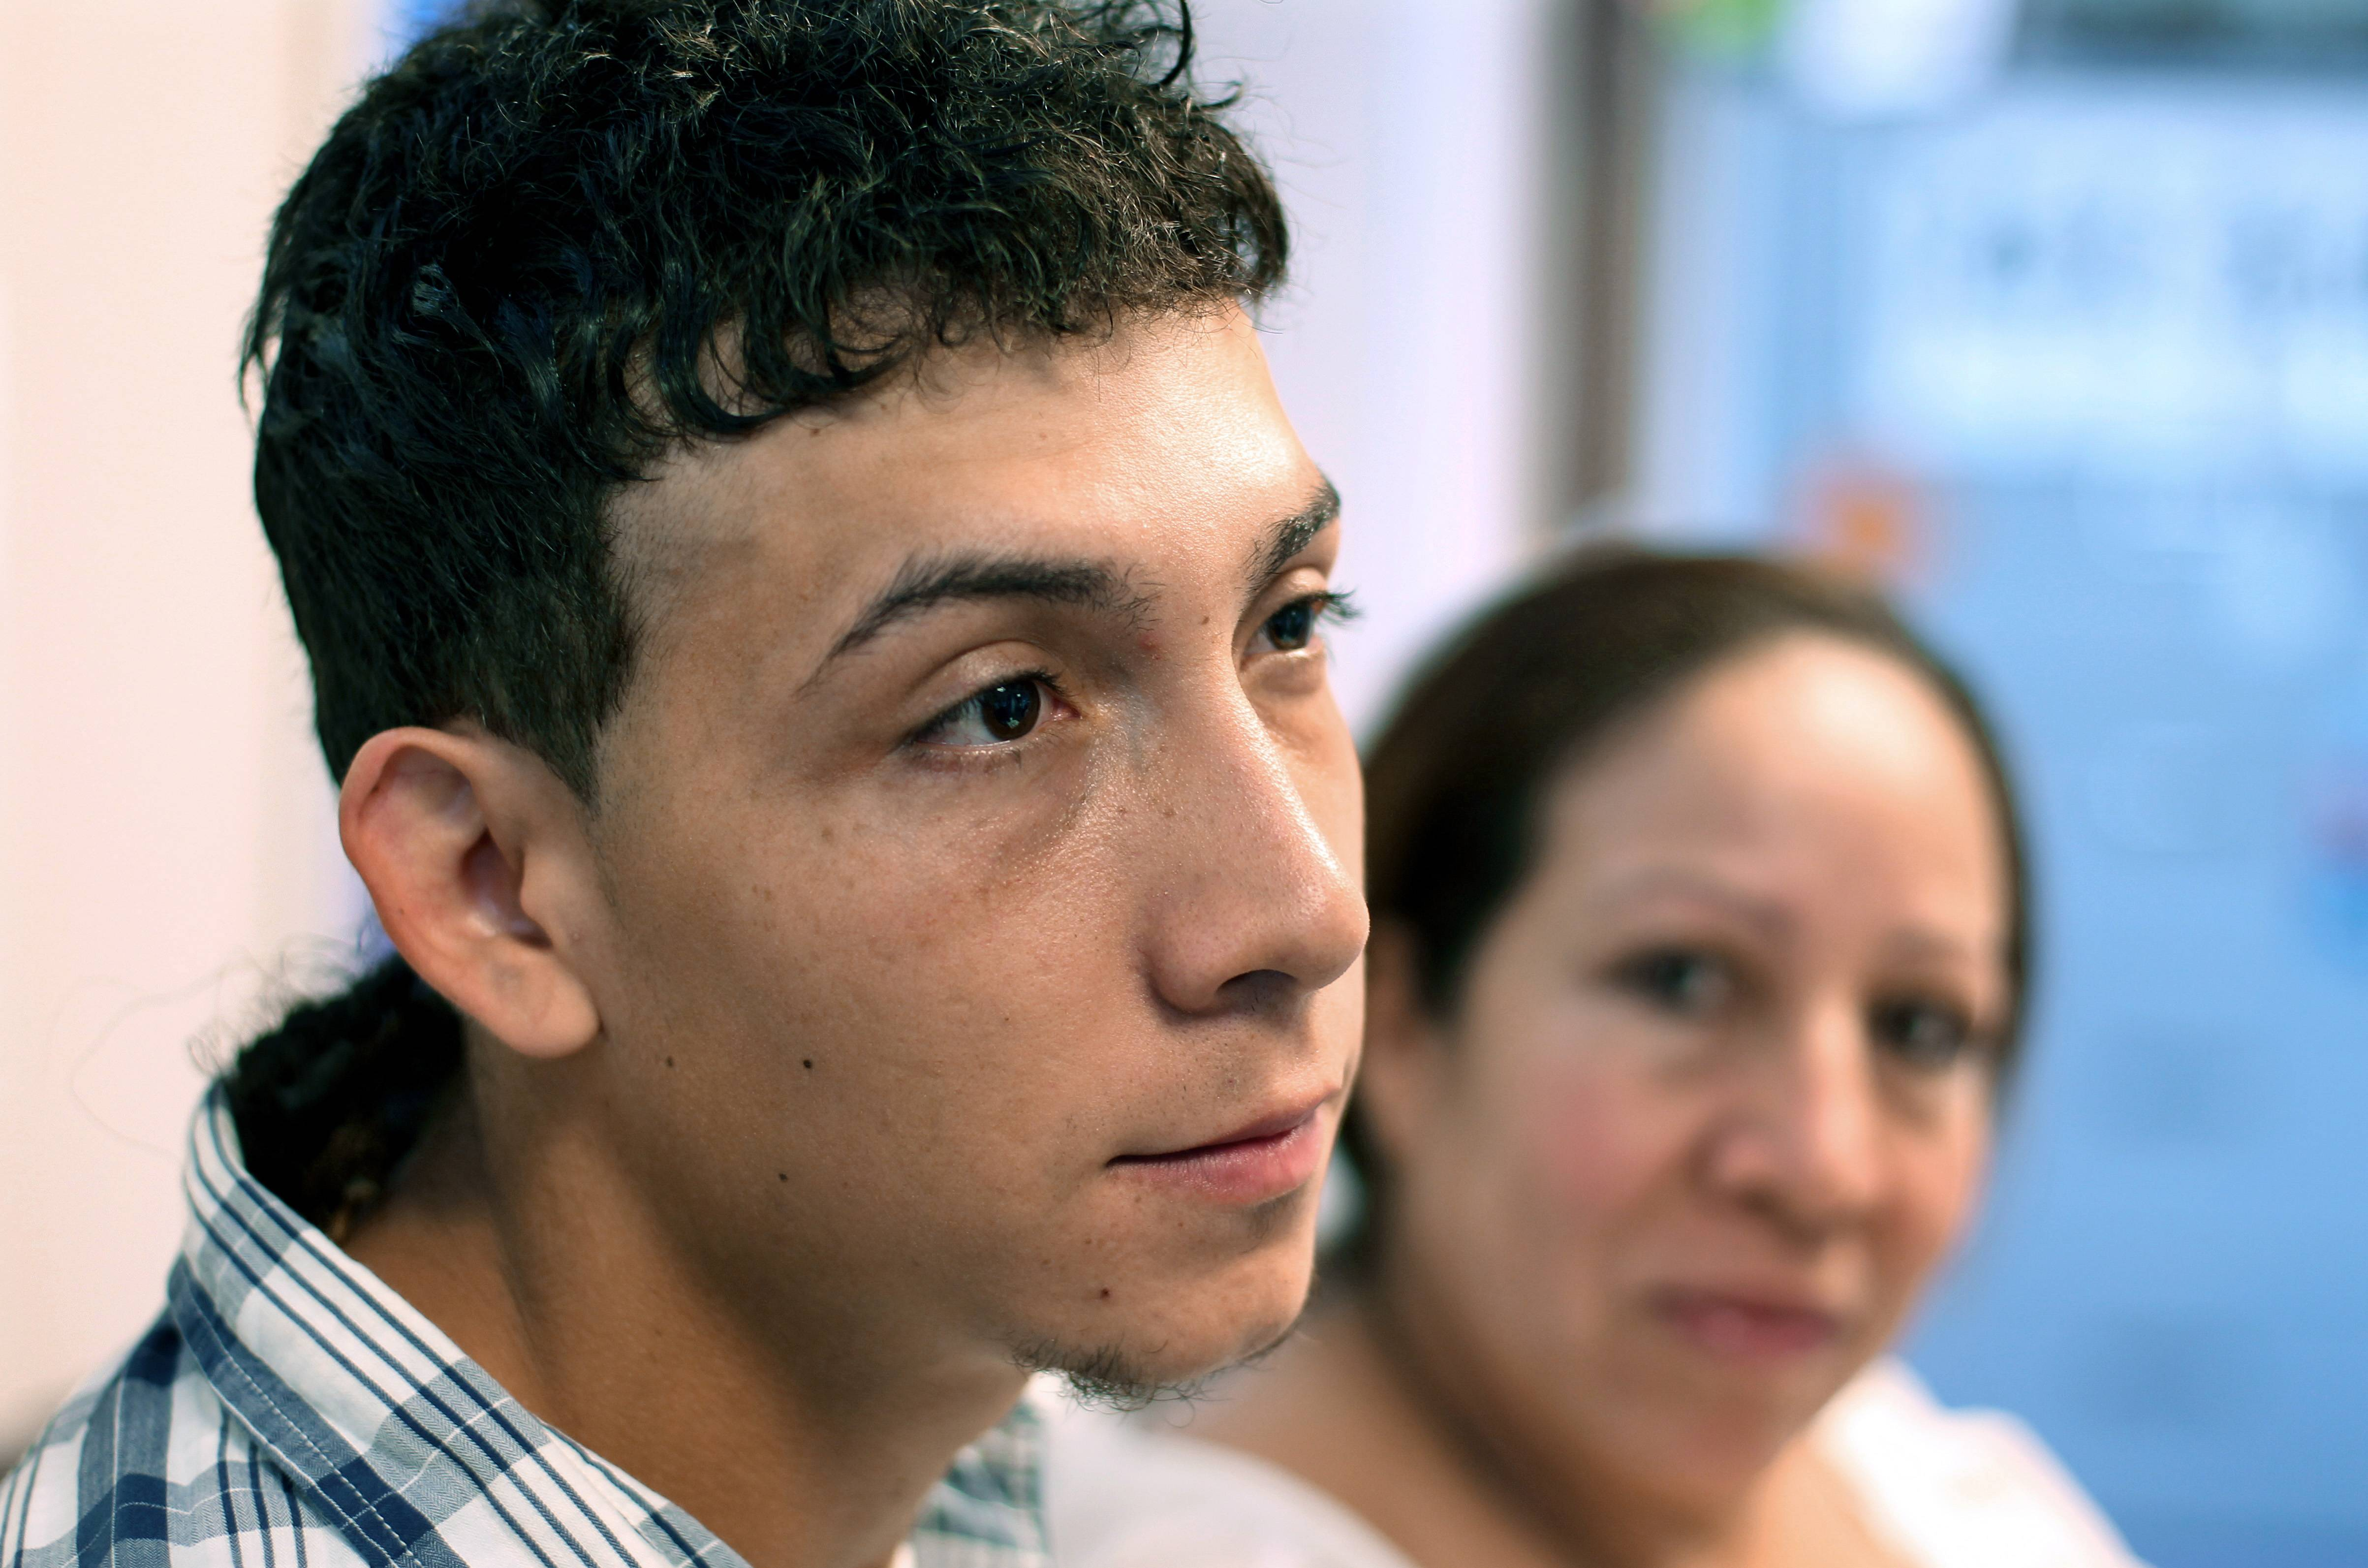 Celvyn Mejia Romero prepares to respond to a question last Sunday during an interview as his mother Susana Romero looks on at the Greater Boston Legal Services in Boston. Twelve years after arriving to the U.S. from Honduras, Mejia Romero is still fighting to stay in America.